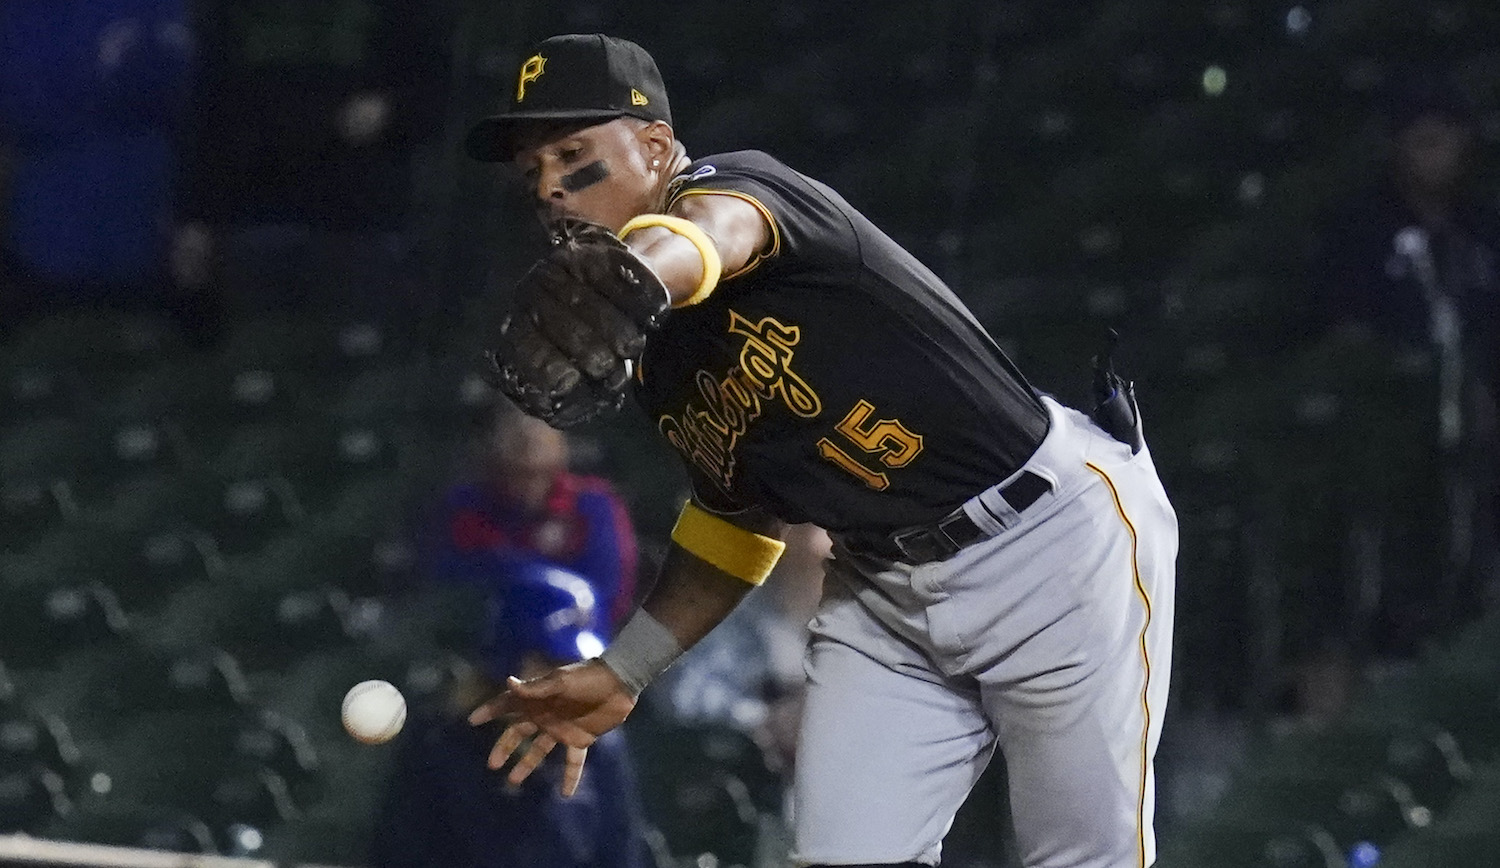 CHICAGO, ILLINOIS - SEPTEMBER 02: Wilmer Difo #15 of the Pittsburgh Pirates commits an error in the 11th inning against the Chicago Cubs at Wrigley Field on September 02, 2021 in Chicago, Illinois. The Cubs won 6-5 in 11 innings. (Photo by Nuccio DiNuzzo/Getty Images)